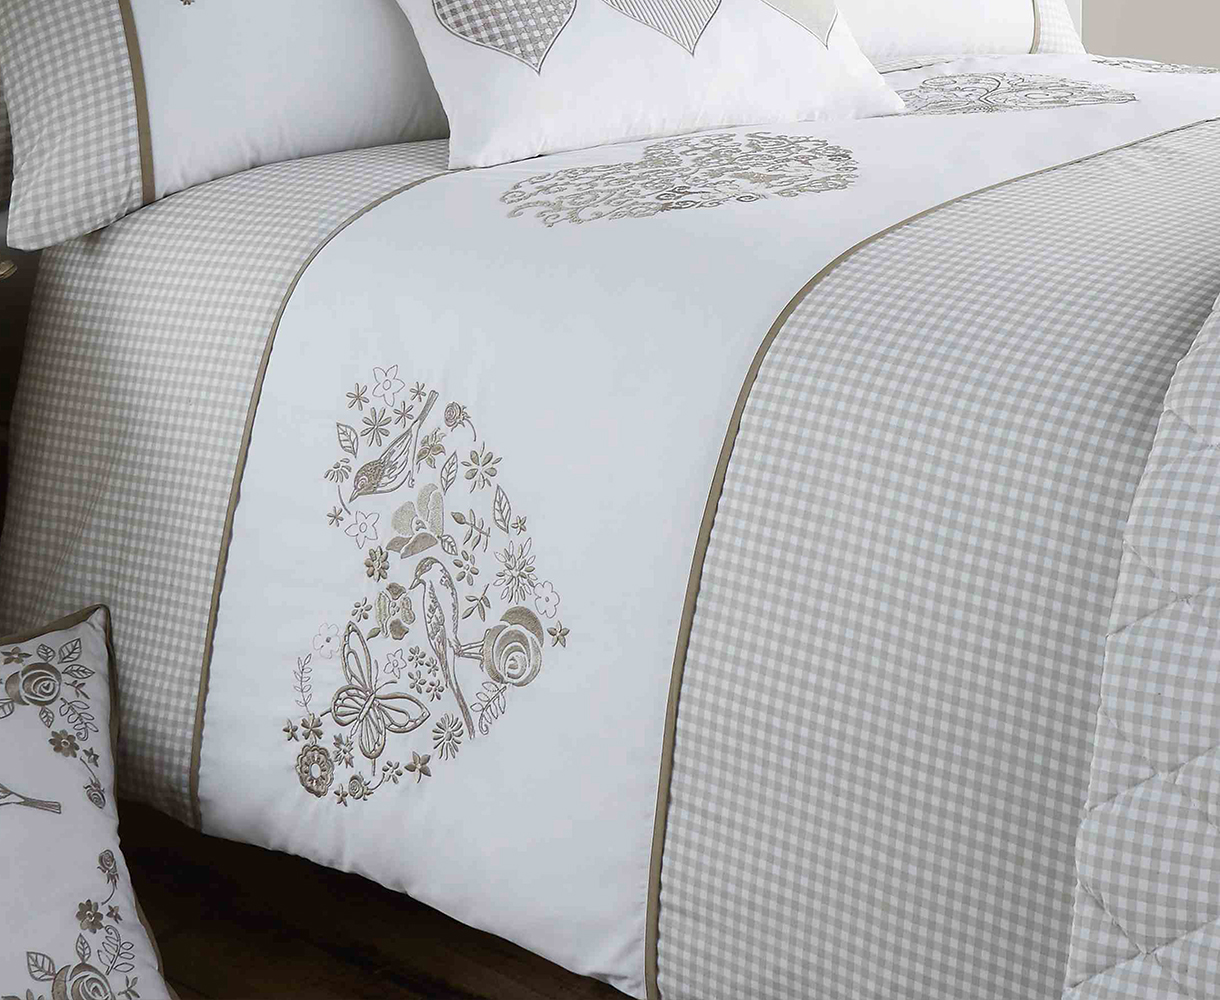 image white t qlt op duvet view usm p company full uk gingham fmt comforter the quilted resmode cover size little wid